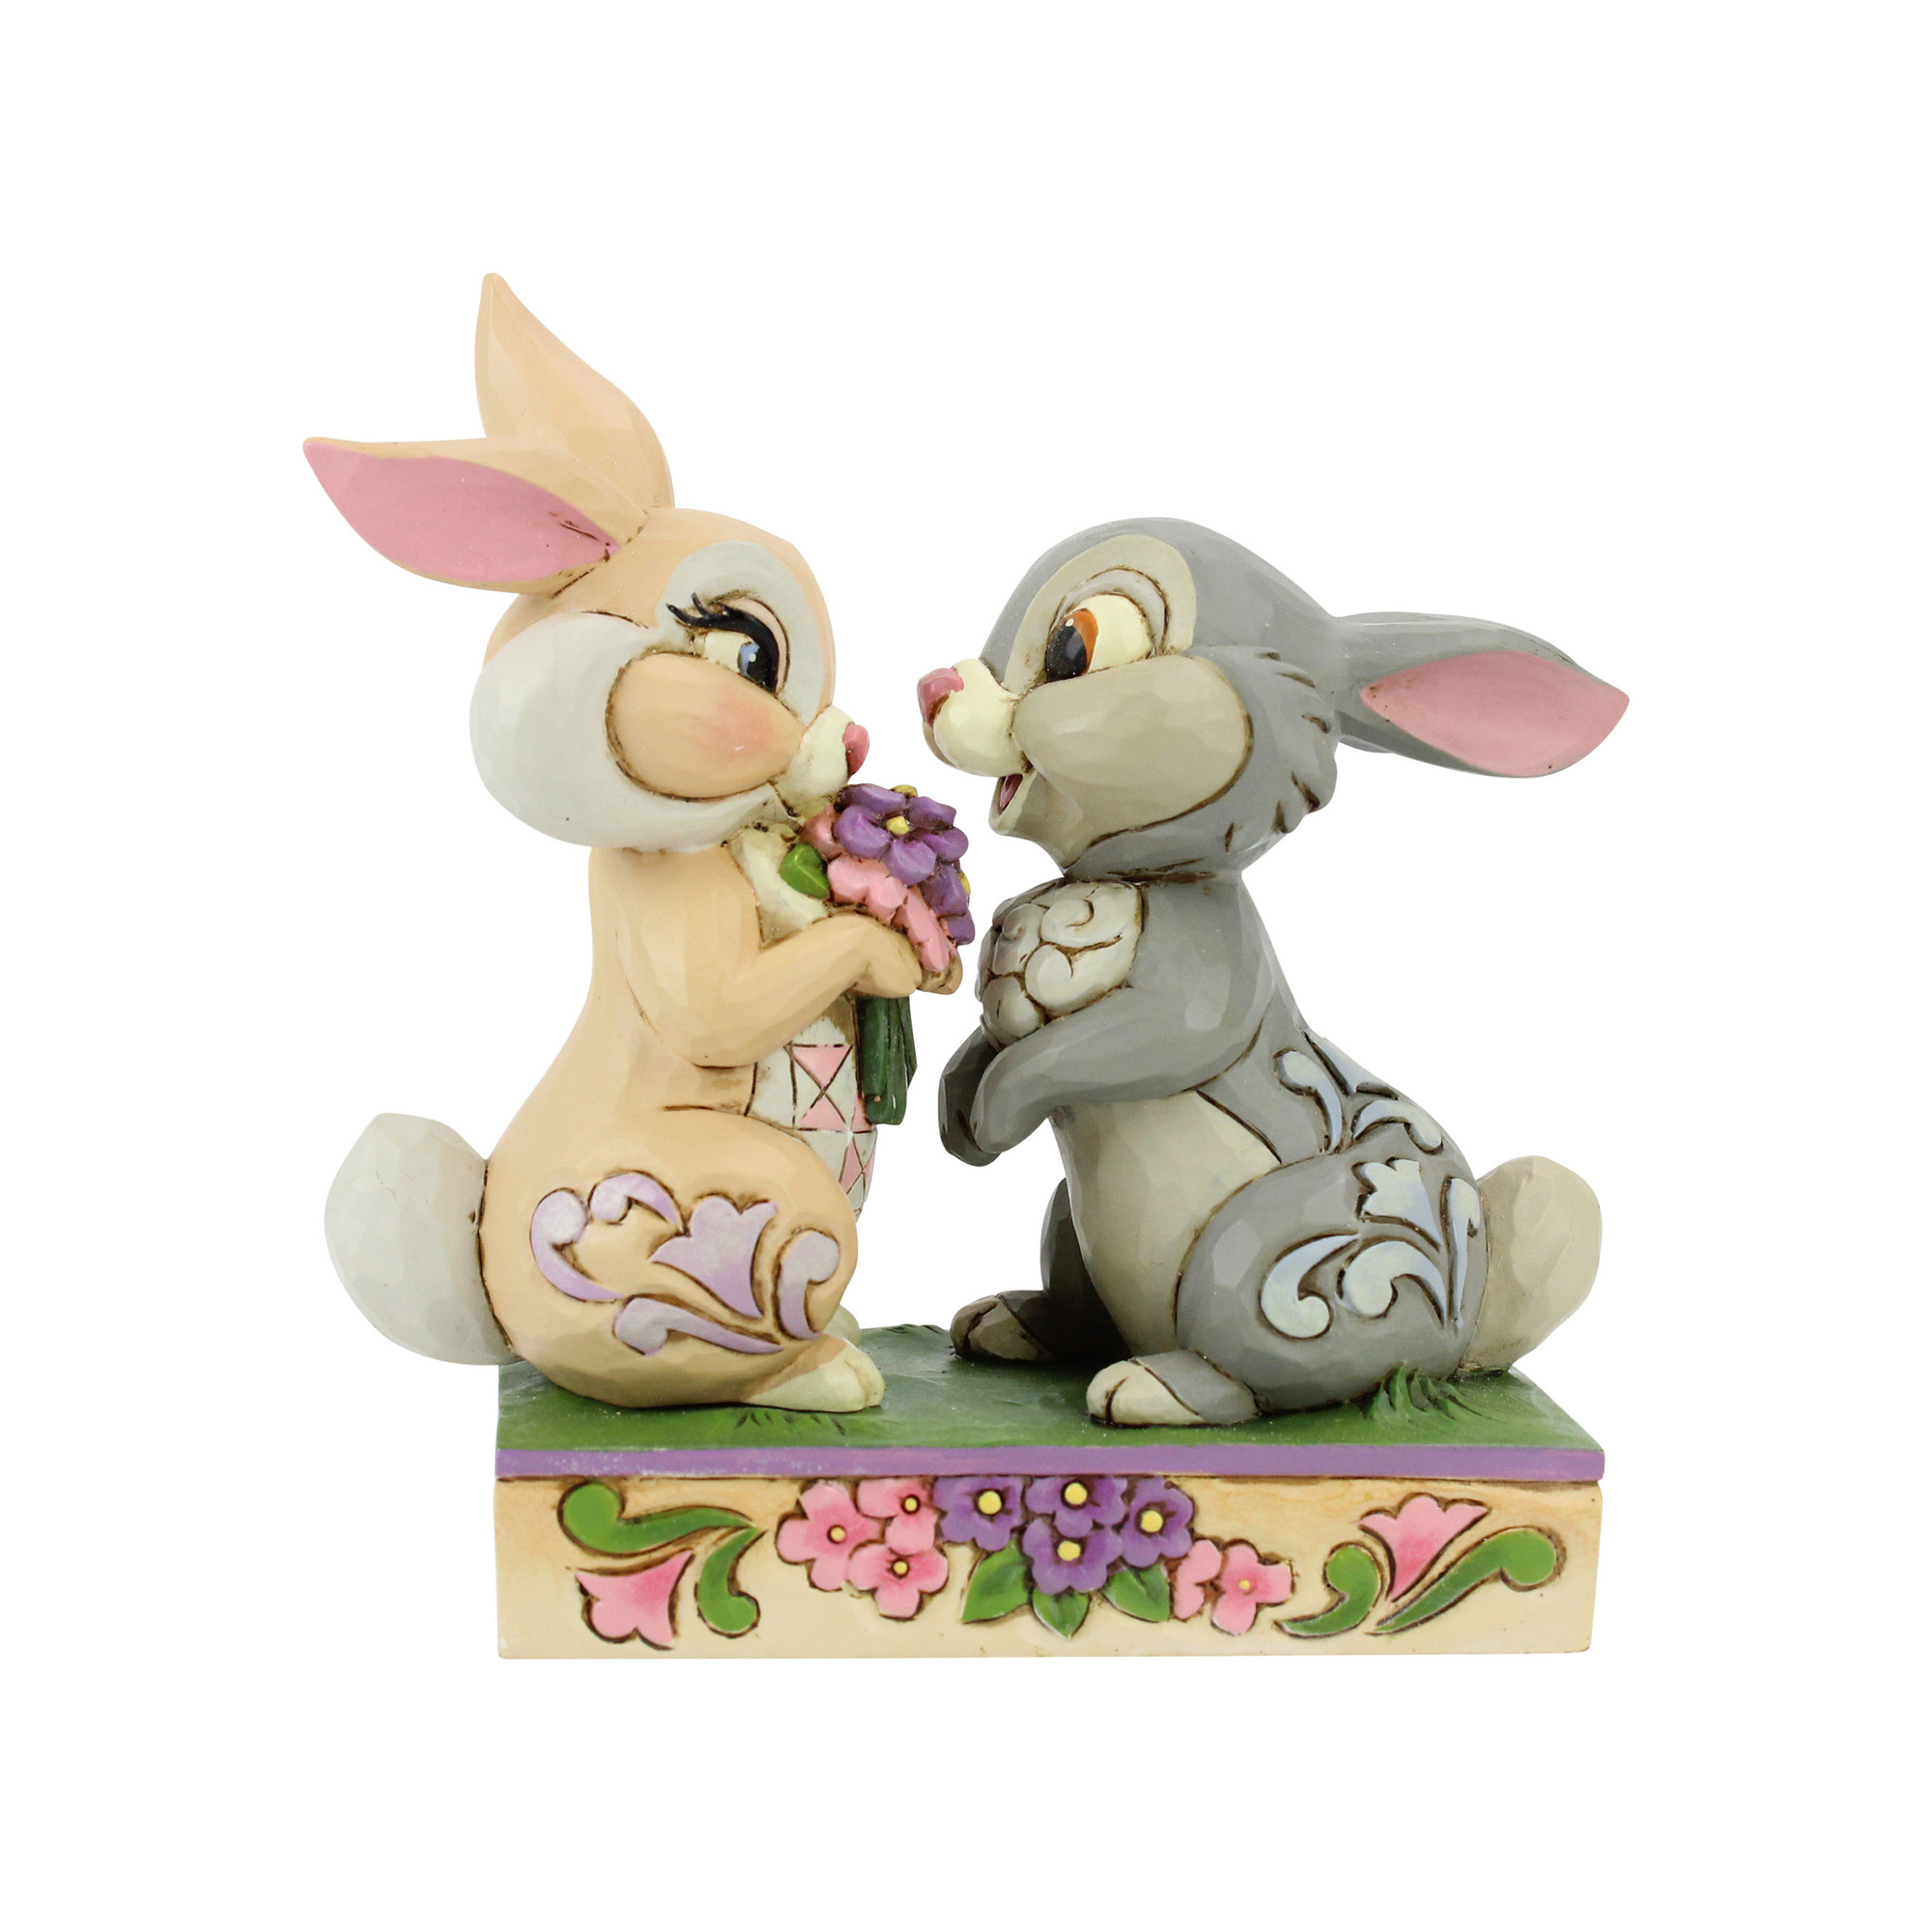 6005963 Thumper and Blossom